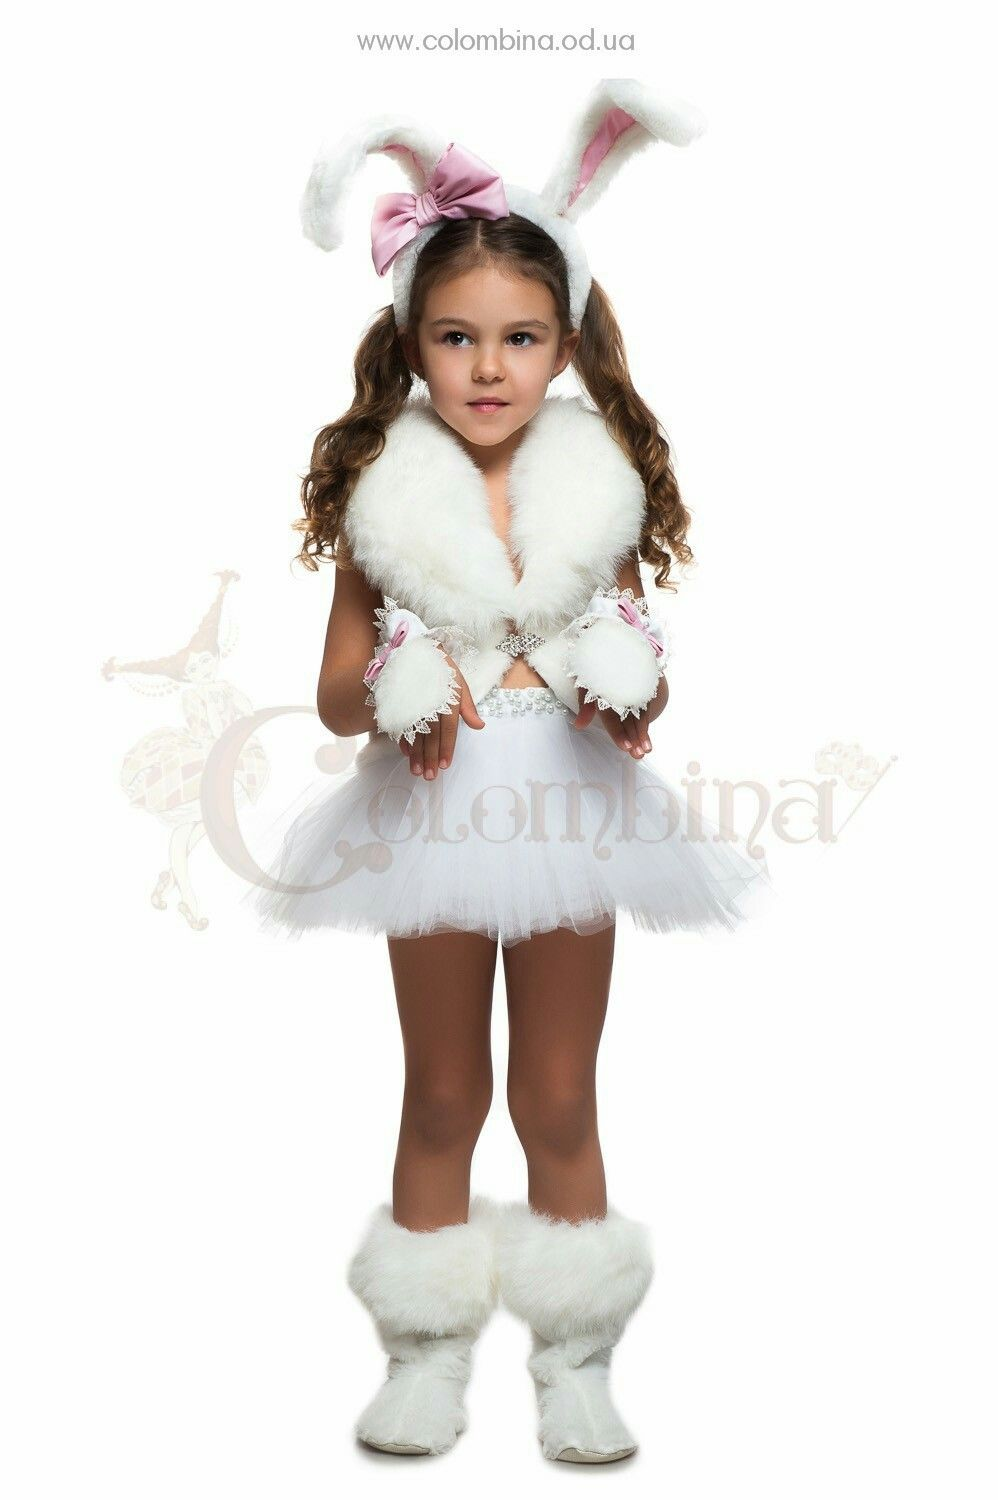 Child Halloween Costumes Baby Costumes Halloween Costume Makeup Dance Costumes Carnival Costumes Pageant Dresses Baby Dresses Ballerina Costume ...  sc 1 st  Pinterest & Pin by ???? ?????? on ??????? ?????????? ?????? | Pinterest ...